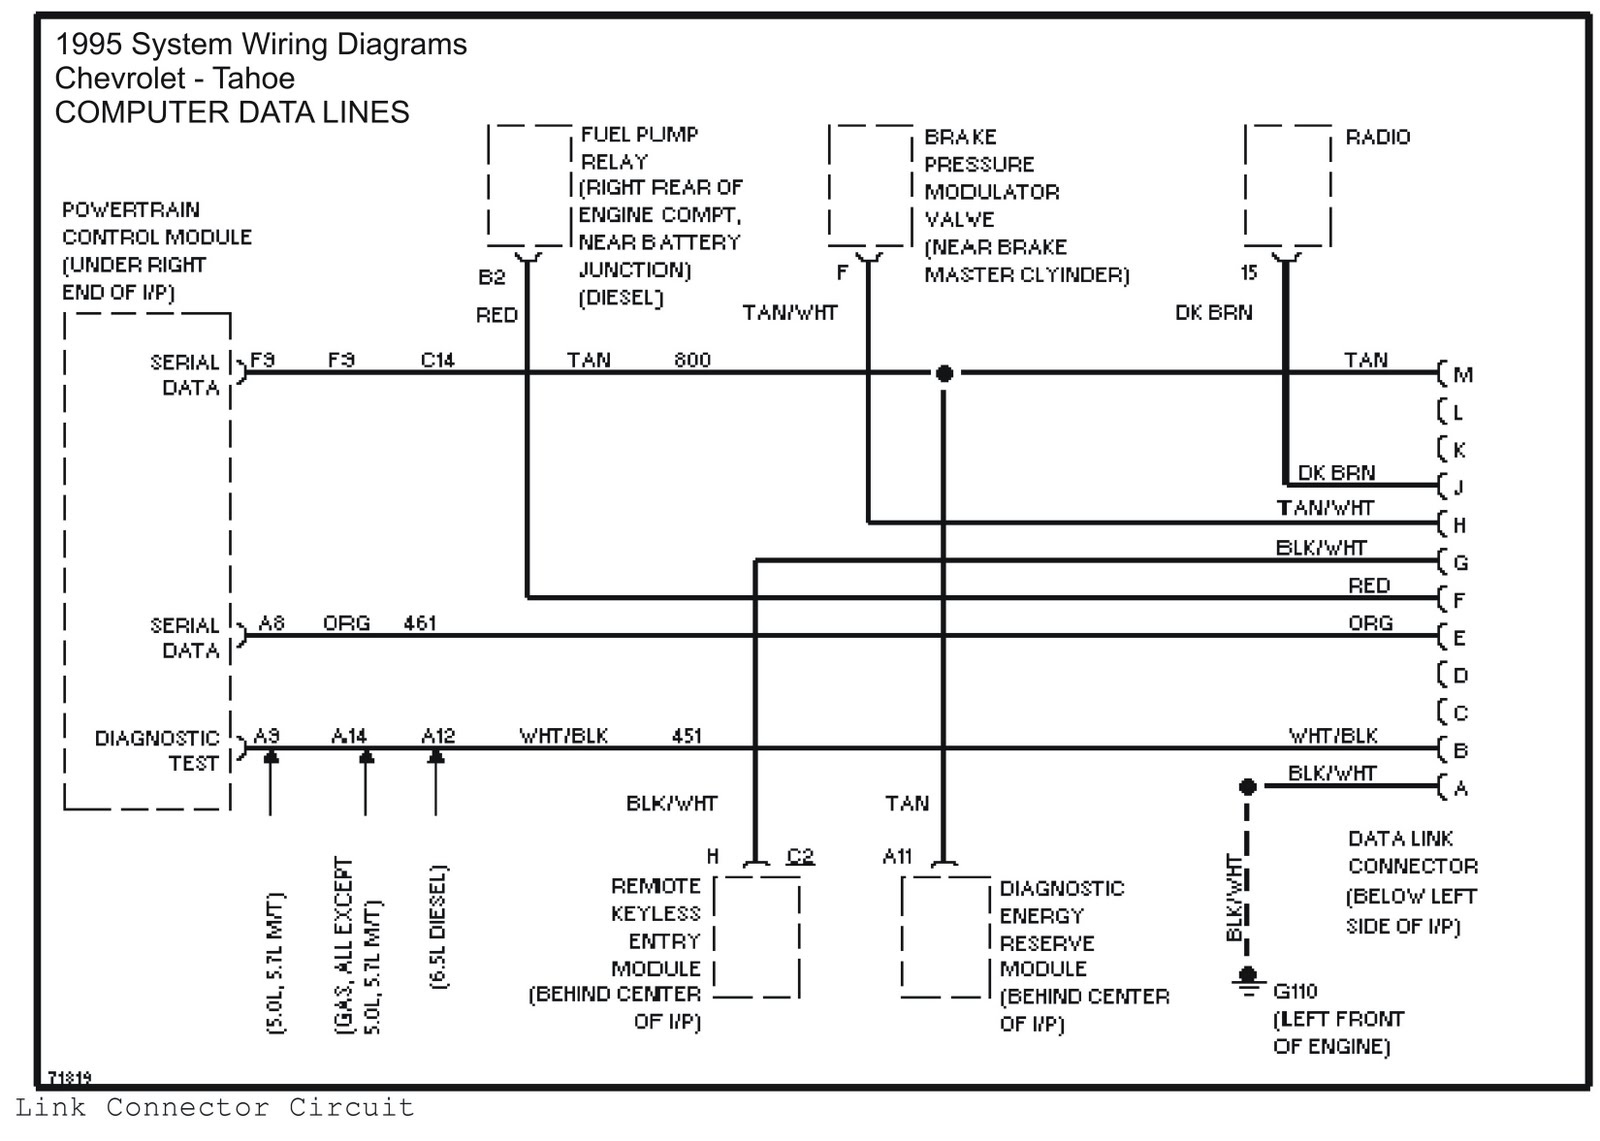 0004 97 chevy express radio wiring diagram 28 images chevy express 09 volvo v70 radio wiring diagram at edmiracle.co